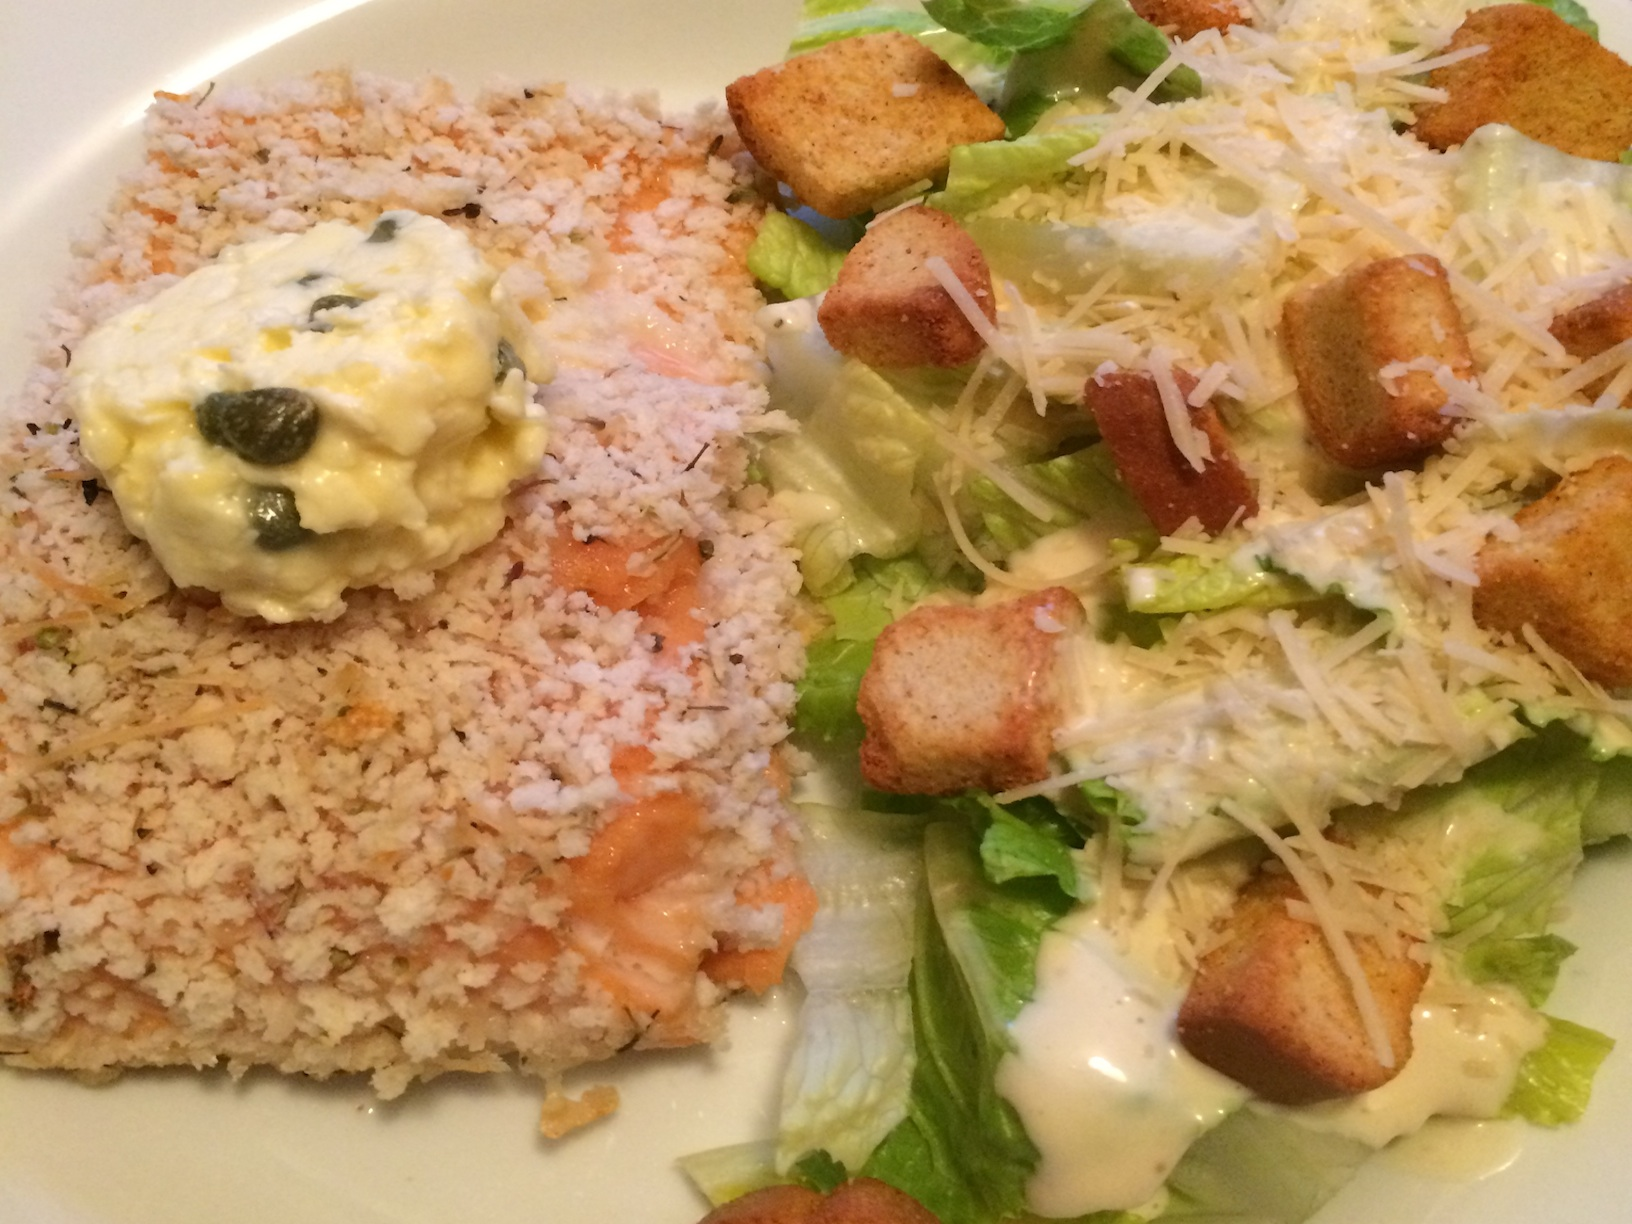 Salmon w/ Parmesan Herb Breading and Lemon Caper Butter